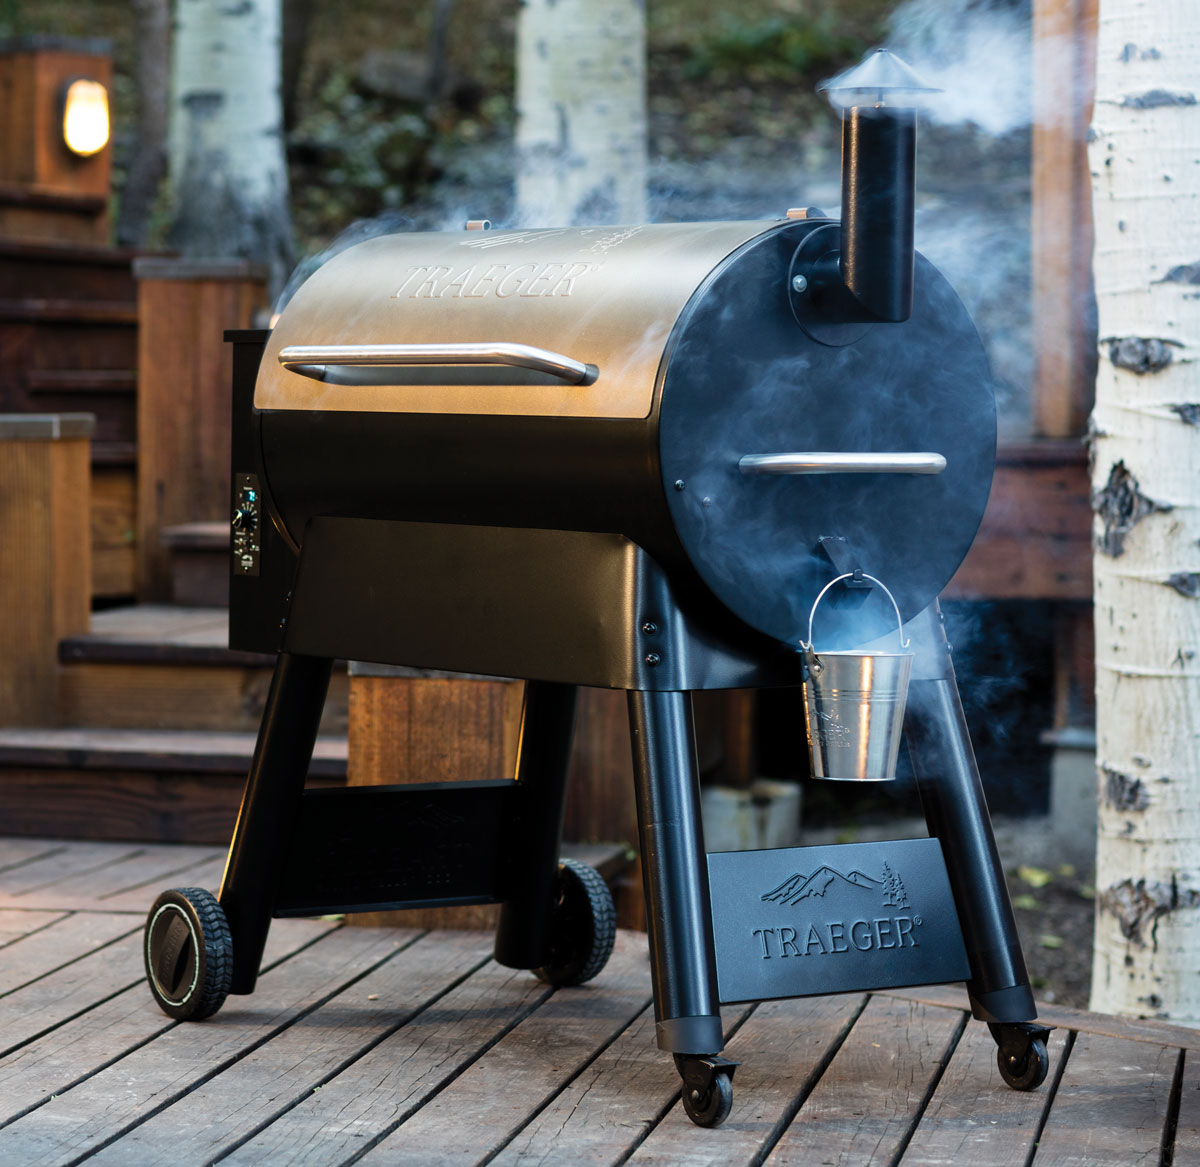 Traeger Grills at Roth's Fresh Markets